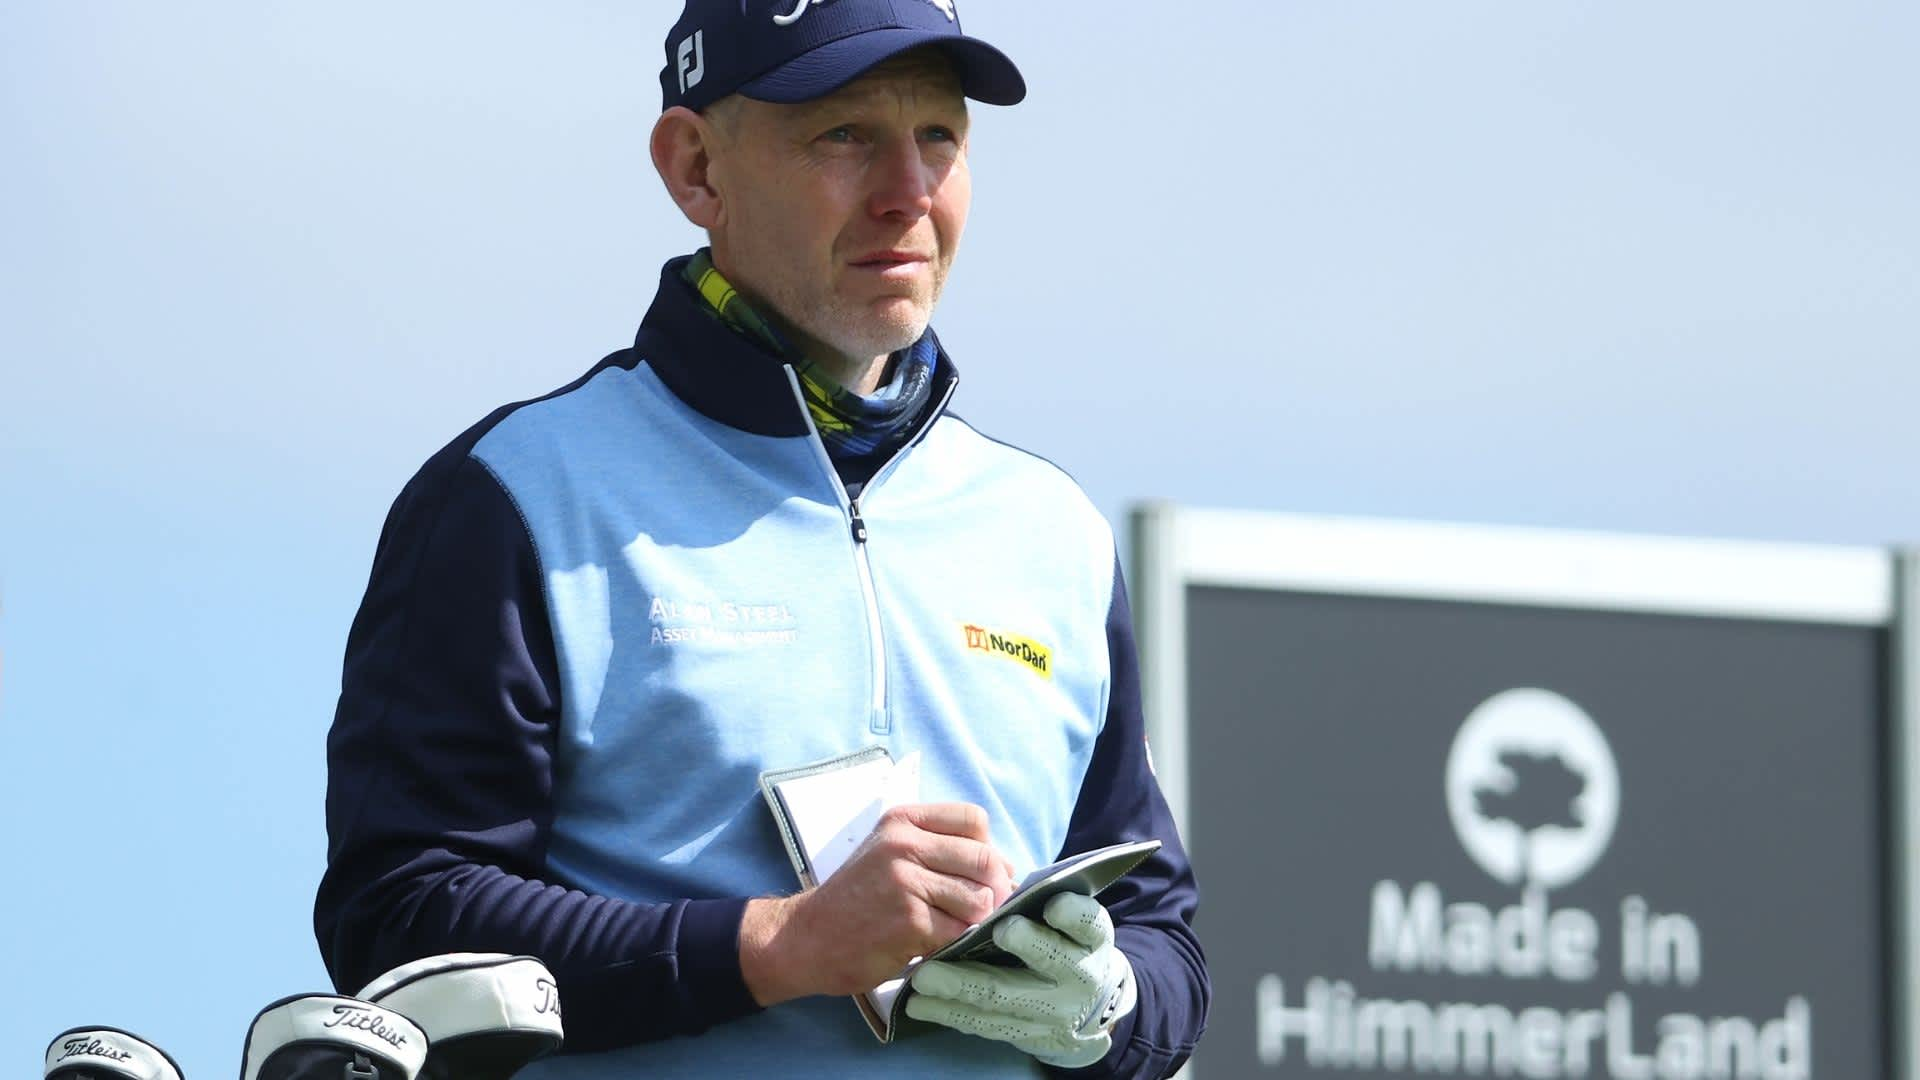 European Tour: Stephen Gallacher is at T4 after second at the Made in HimmerLand presented by FREJA